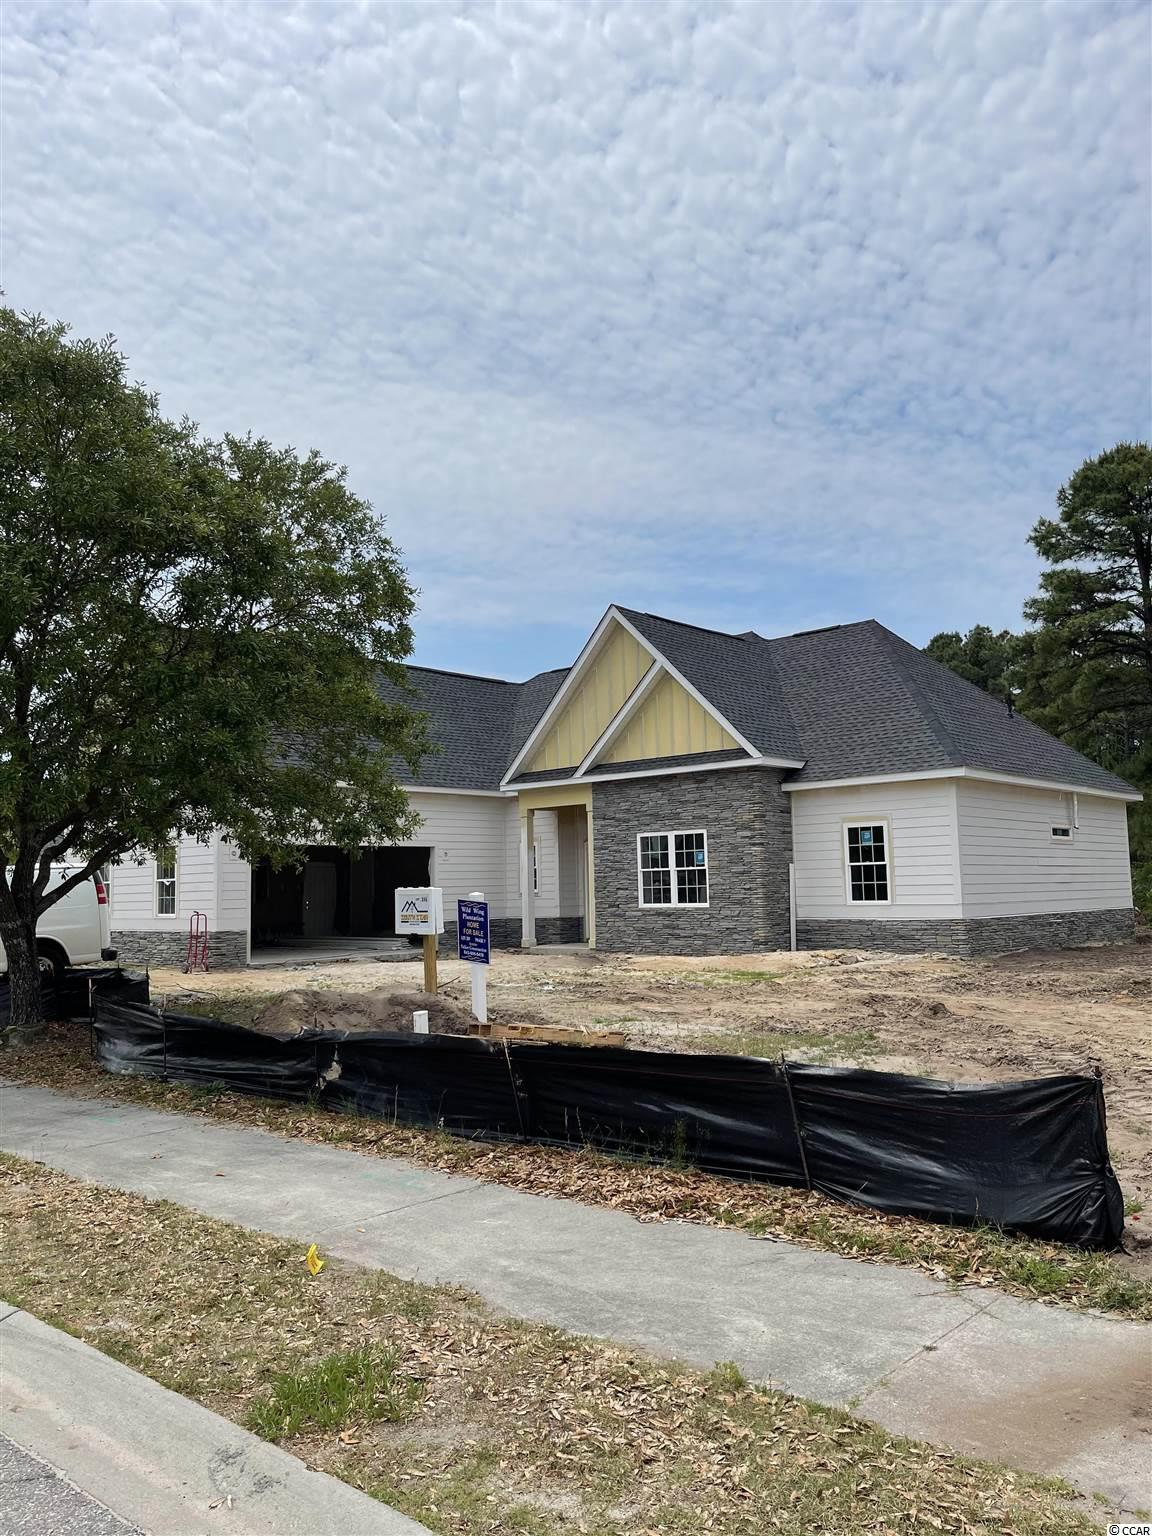 This beautiful new construction home is under construction and will be ready for a lucky buyer in June 2021! Located in the Wild Wing Plantation community that has a World class golf course and an amenities center that is amazing!. As you will enter this perfectly laid out open floorpan home with 4 bedrooms 3 bathrooms and a 5th room perfect for an office on the first floor. You will notice right away the upgrades and quality of work are above and beyond other larger builders in the area. This is a 100% custom home and it shows!. With LVP flooring throughout, Hardie board siding, upgraded countertops, tankless gas water heater, soft close all wood cabinets, all showers are tile including a large shower and tub in the master bathroom, custom wood shelving in your oversized master walk in closet, large tray ceilings, appliances credit will be given, crown molding and upgraded lighting package. This is a large private lot with woods/water access to the large lake in Wild Wing. Community has two entrances/exits which makes for easy access to all shopping, restaurants, medical facilities, Coastal Carolina University and two Highways for a quick drive to anywhere on the beach!. Buyers if purchase in time will be given choices for certain finishes. Pictures are of a completed similar home in the community. Book your showing today as you will not be disappointed!